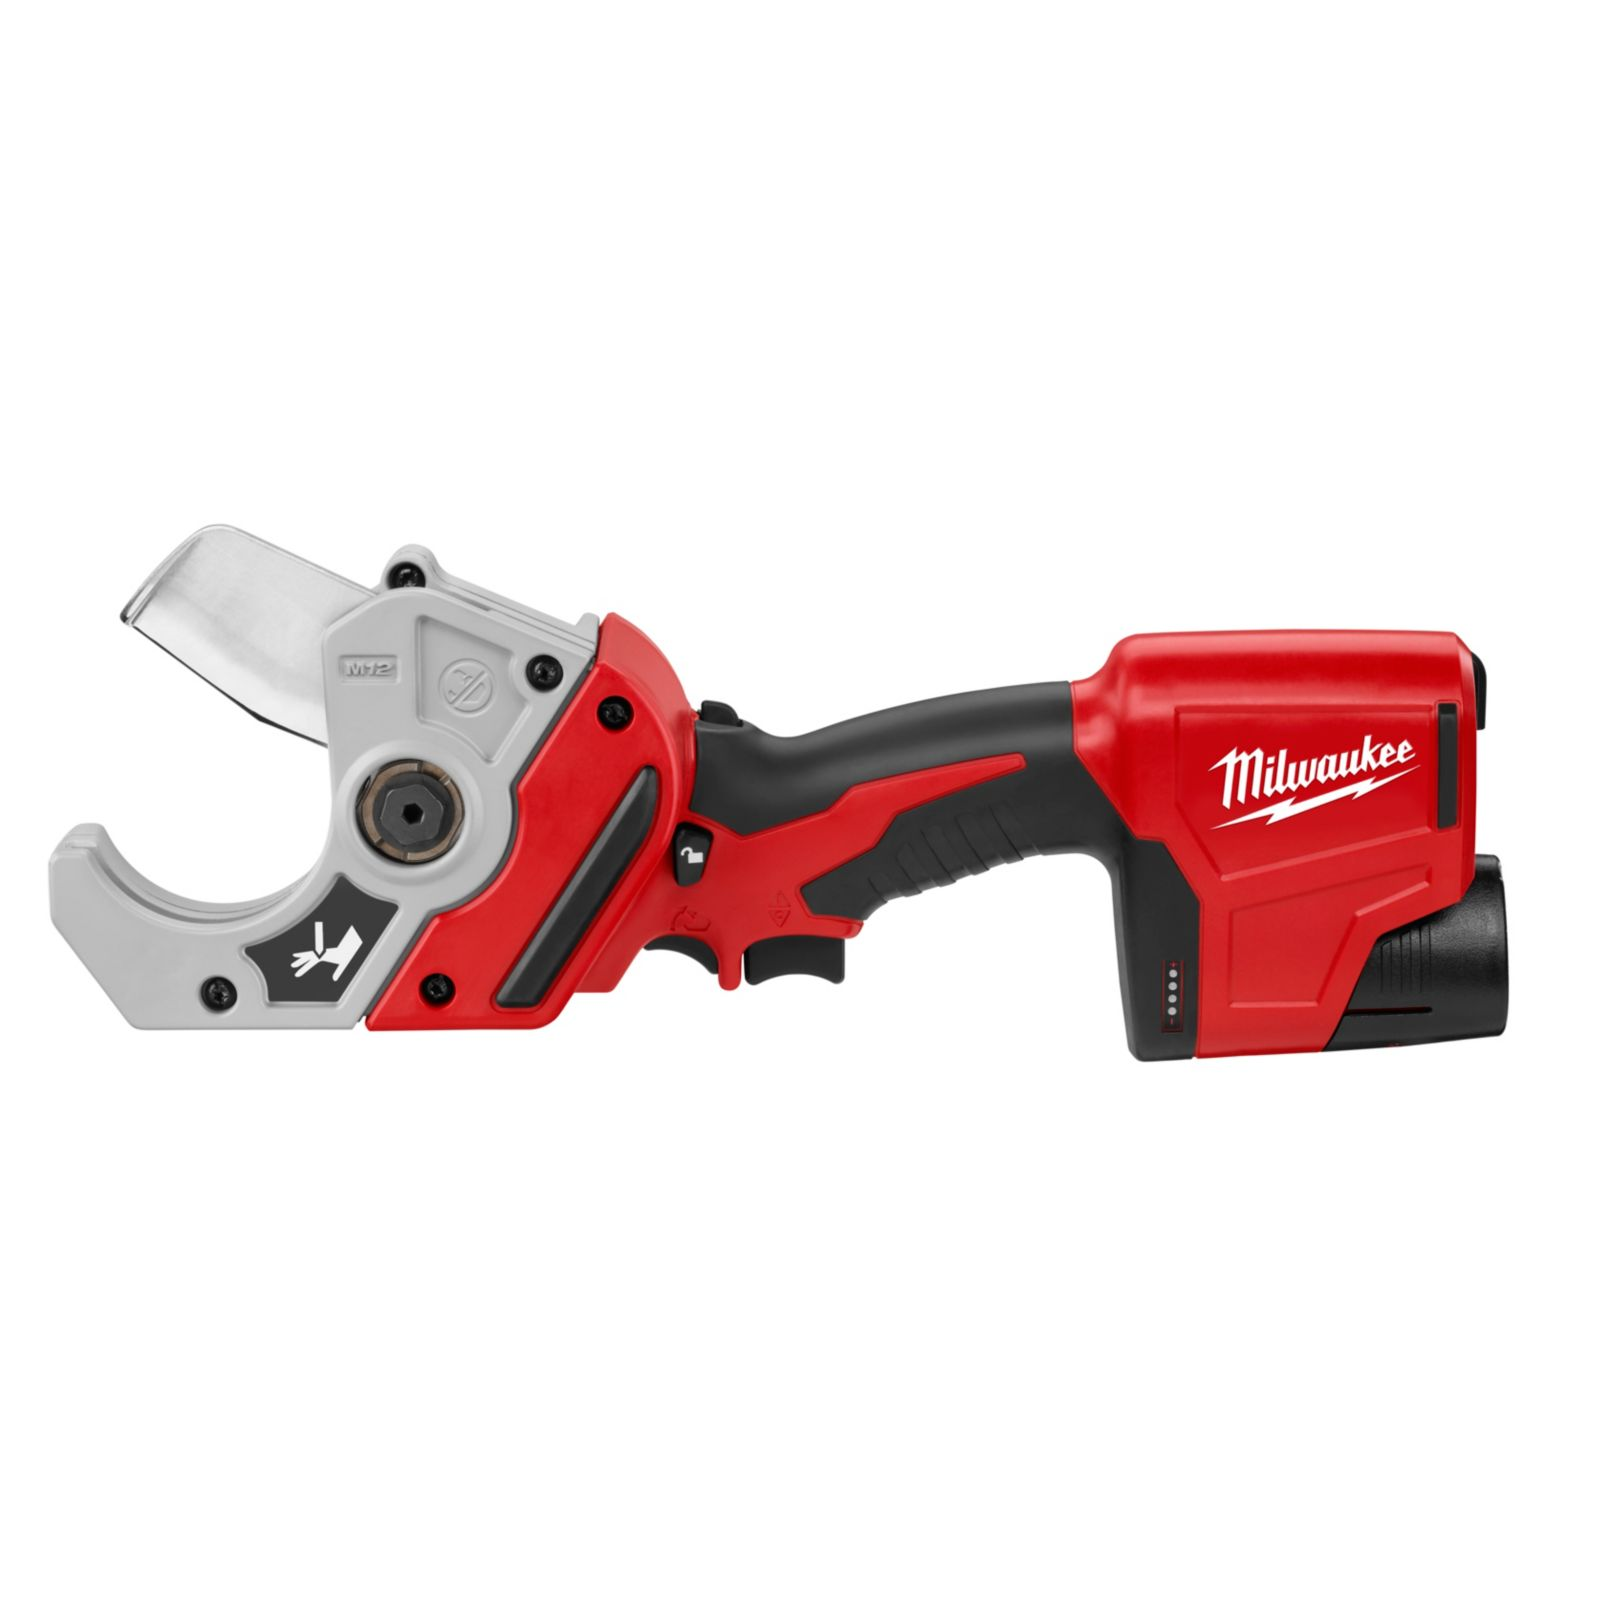 Milwaukee Tool 2470-21 - M12 Cordless Lithium-Ion PVC Shear Kit